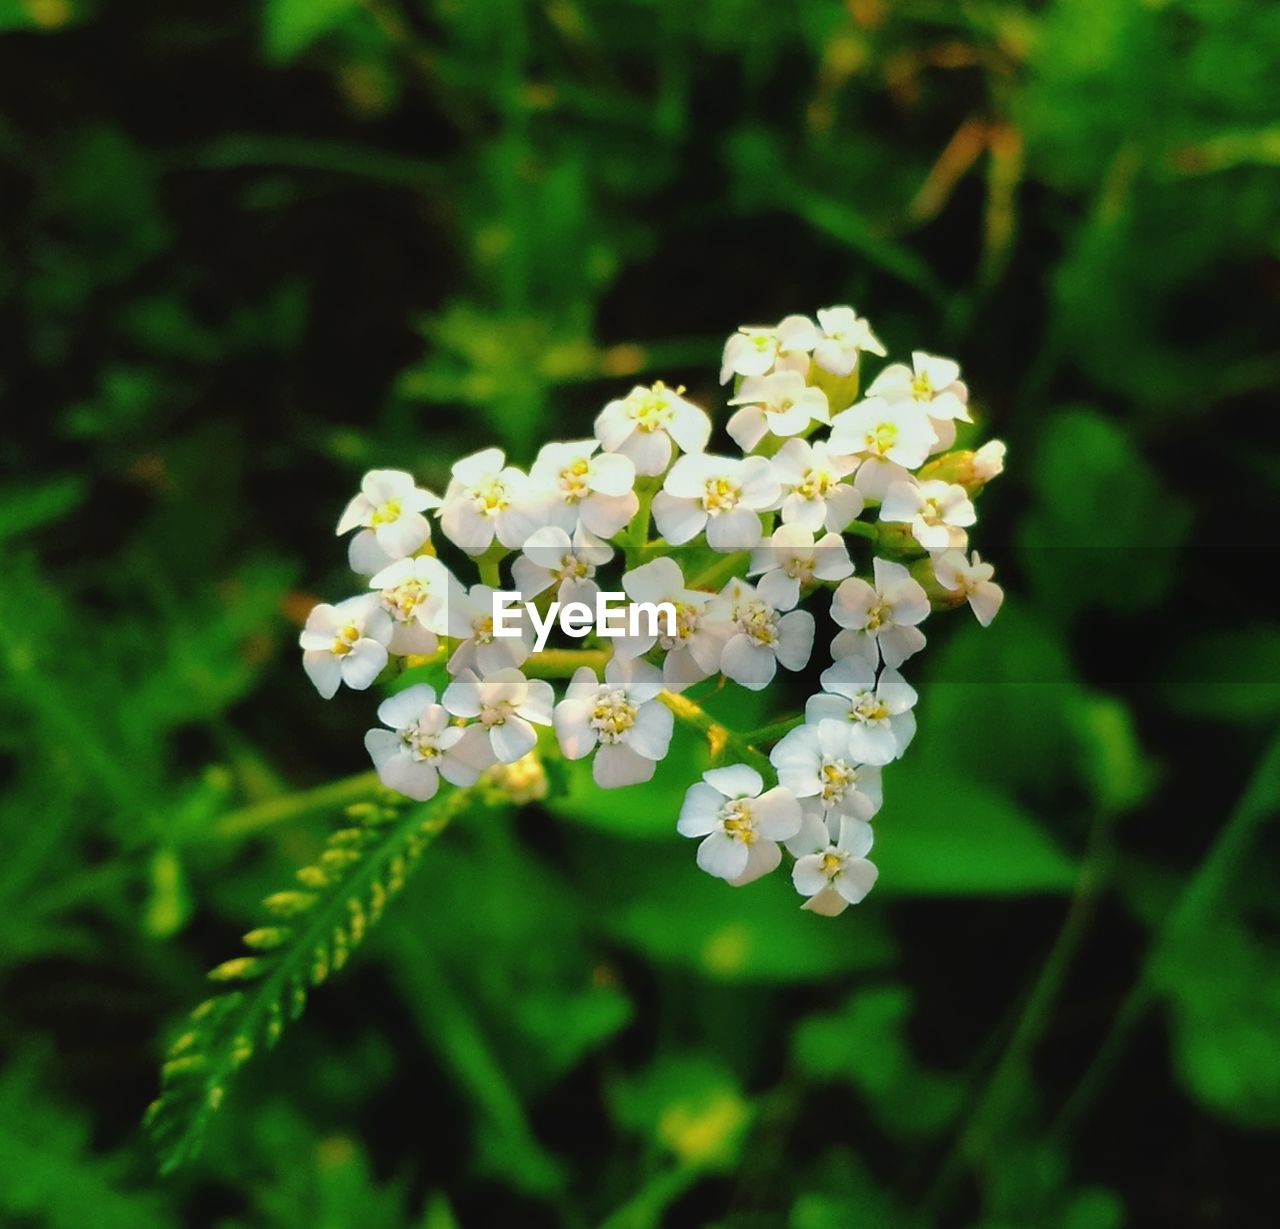 flower, vulnerability, plant, fragility, beauty in nature, freshness, flowering plant, growth, close-up, petal, day, flower head, no people, nature, inflorescence, selective focus, green color, white color, focus on foreground, outdoors, lantana